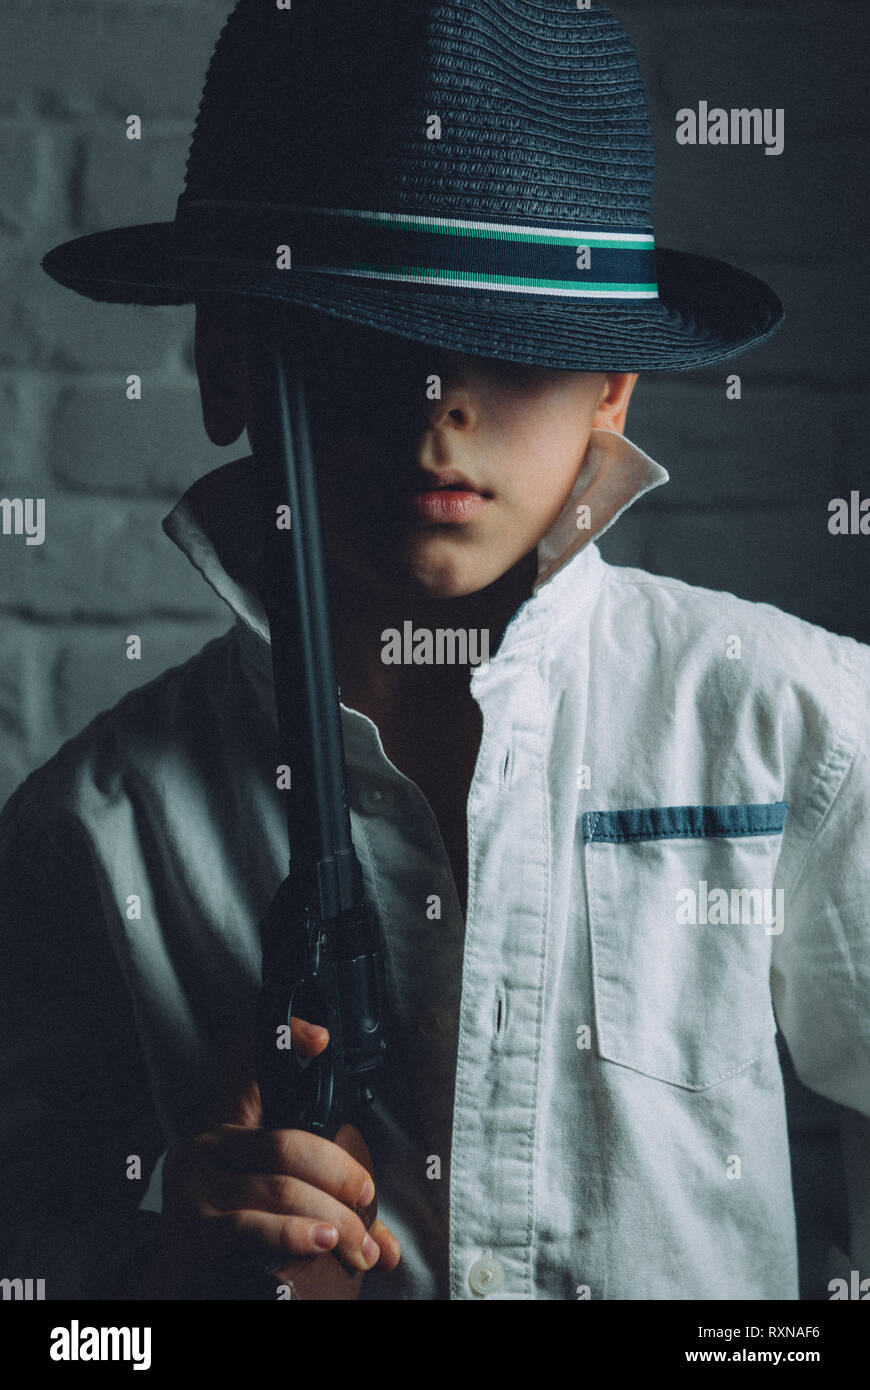 cute little boy wearing vintage hat with long gun in hand in criminal retro style chicago mafia hollywood gangster image - Stock Image